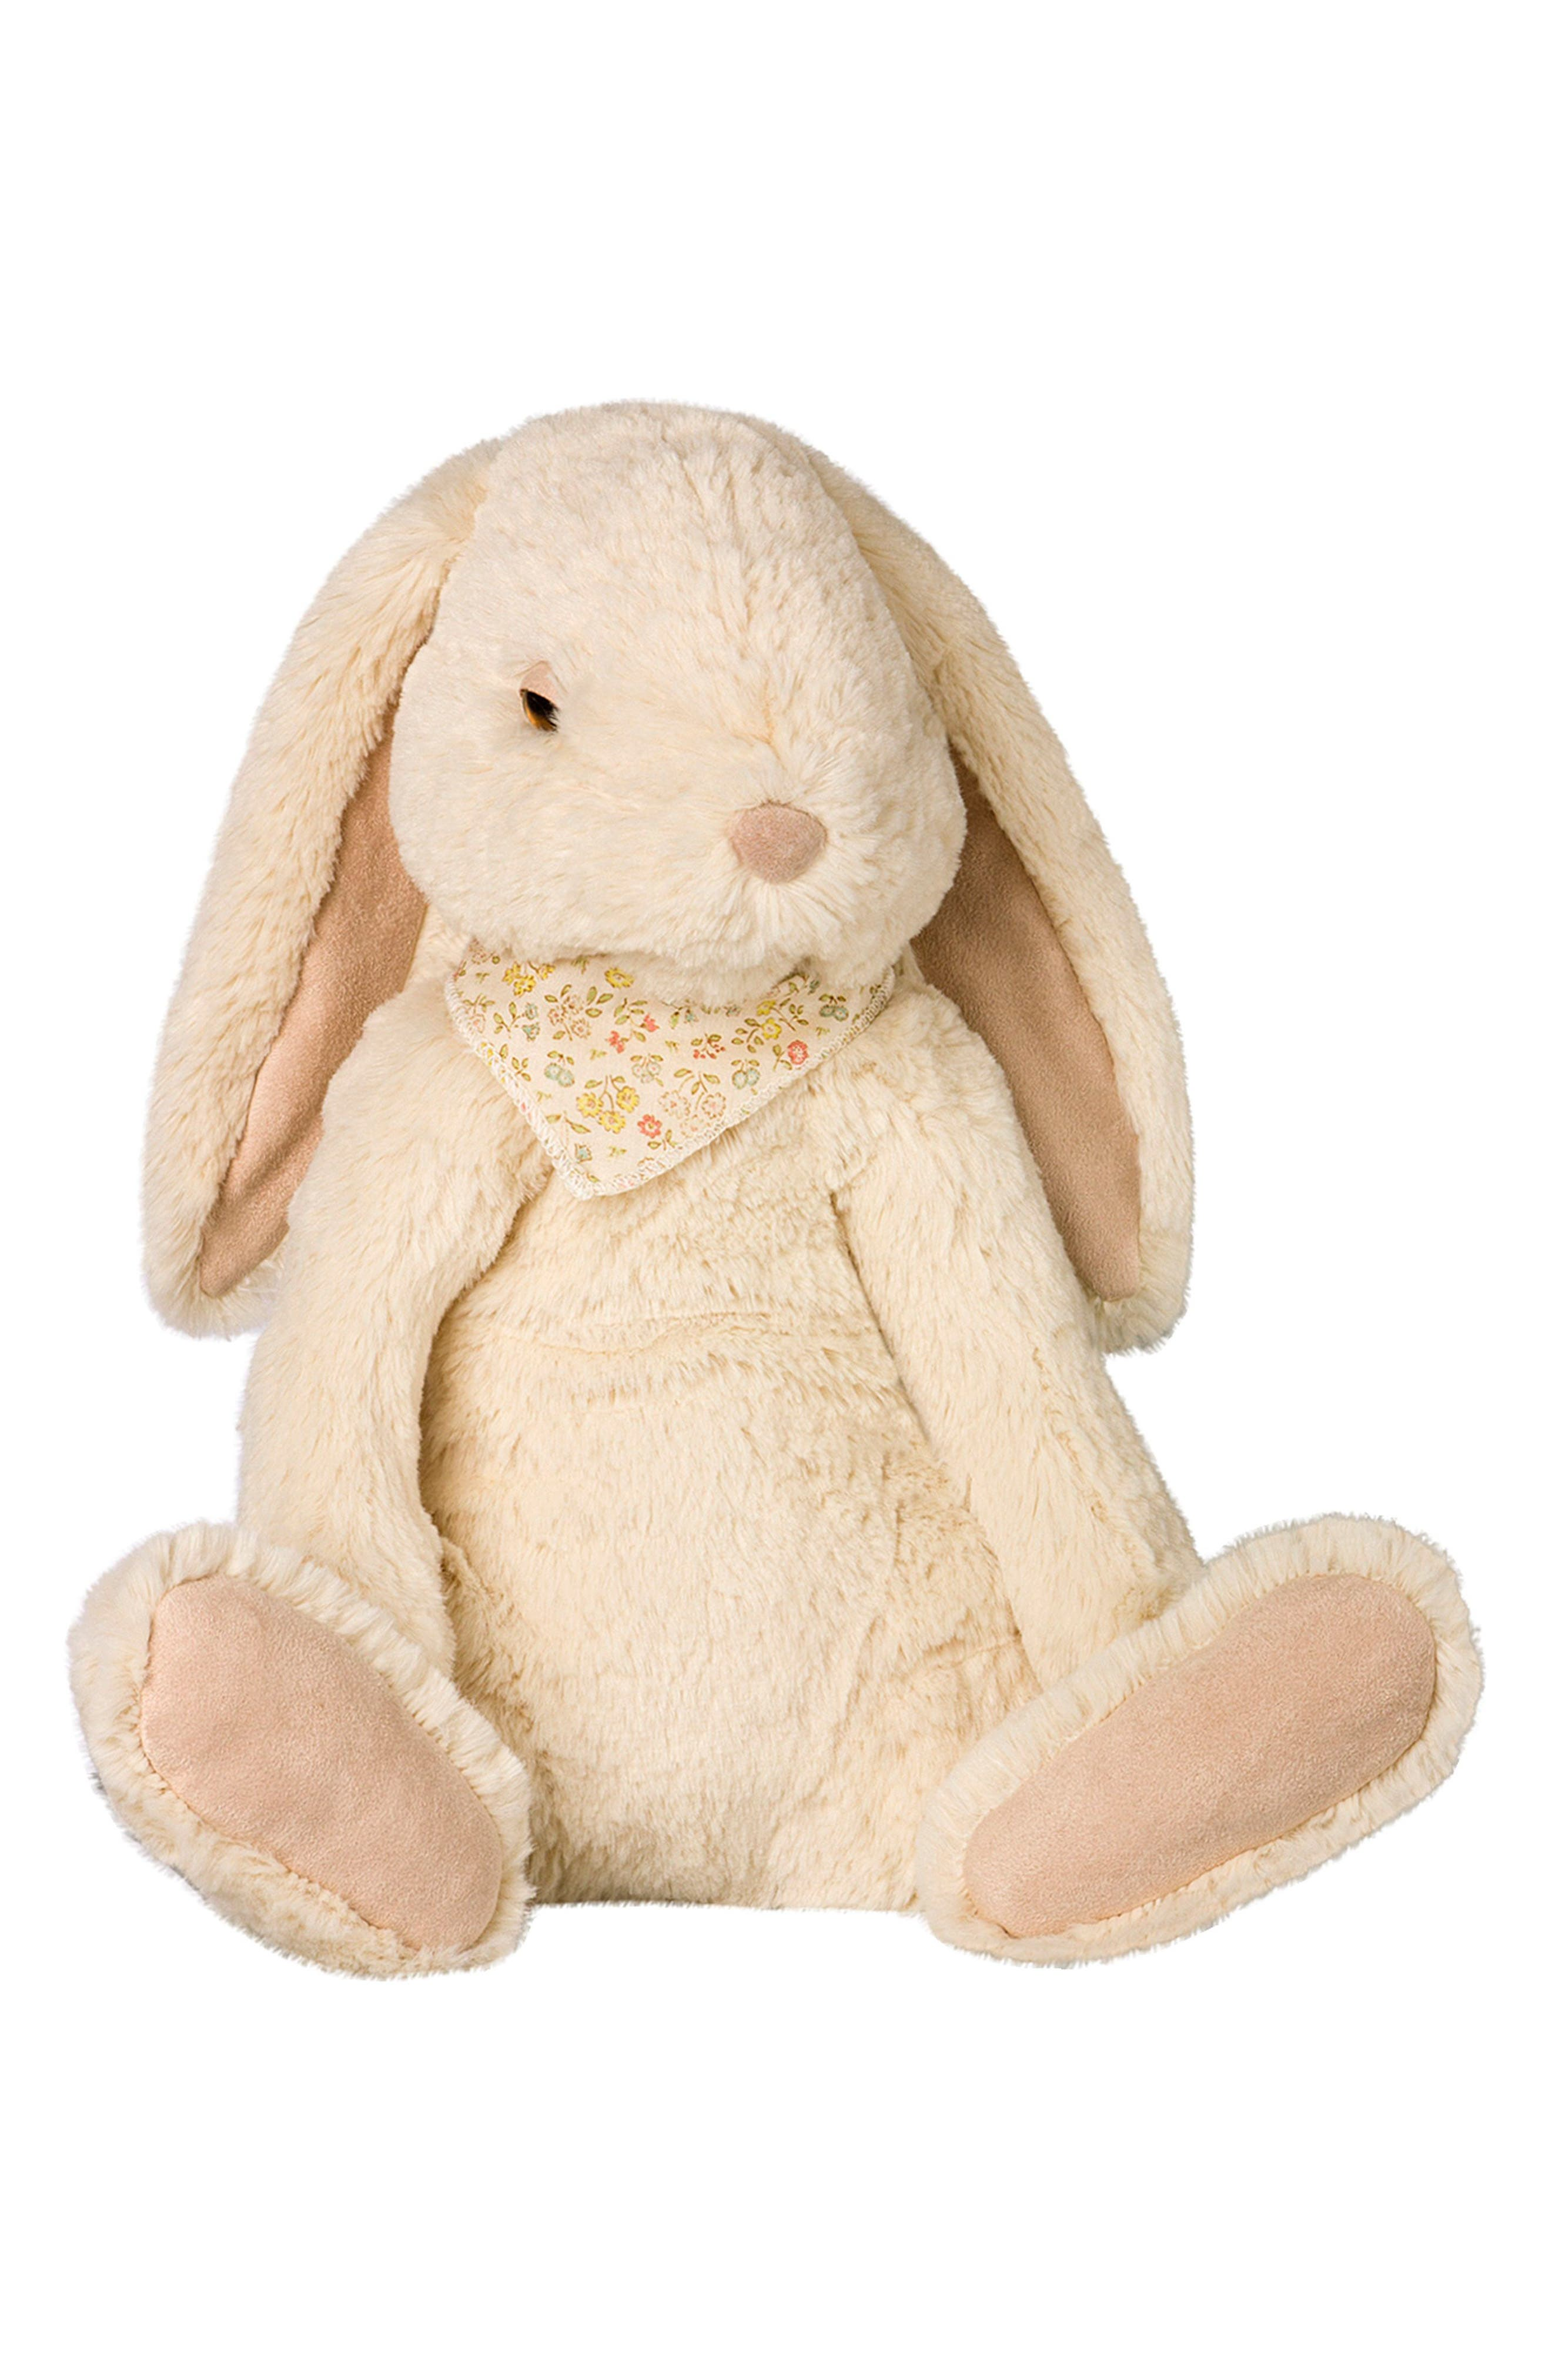 Fluffy Buffy Stuffed Animal,                         Main,                         color, Off White